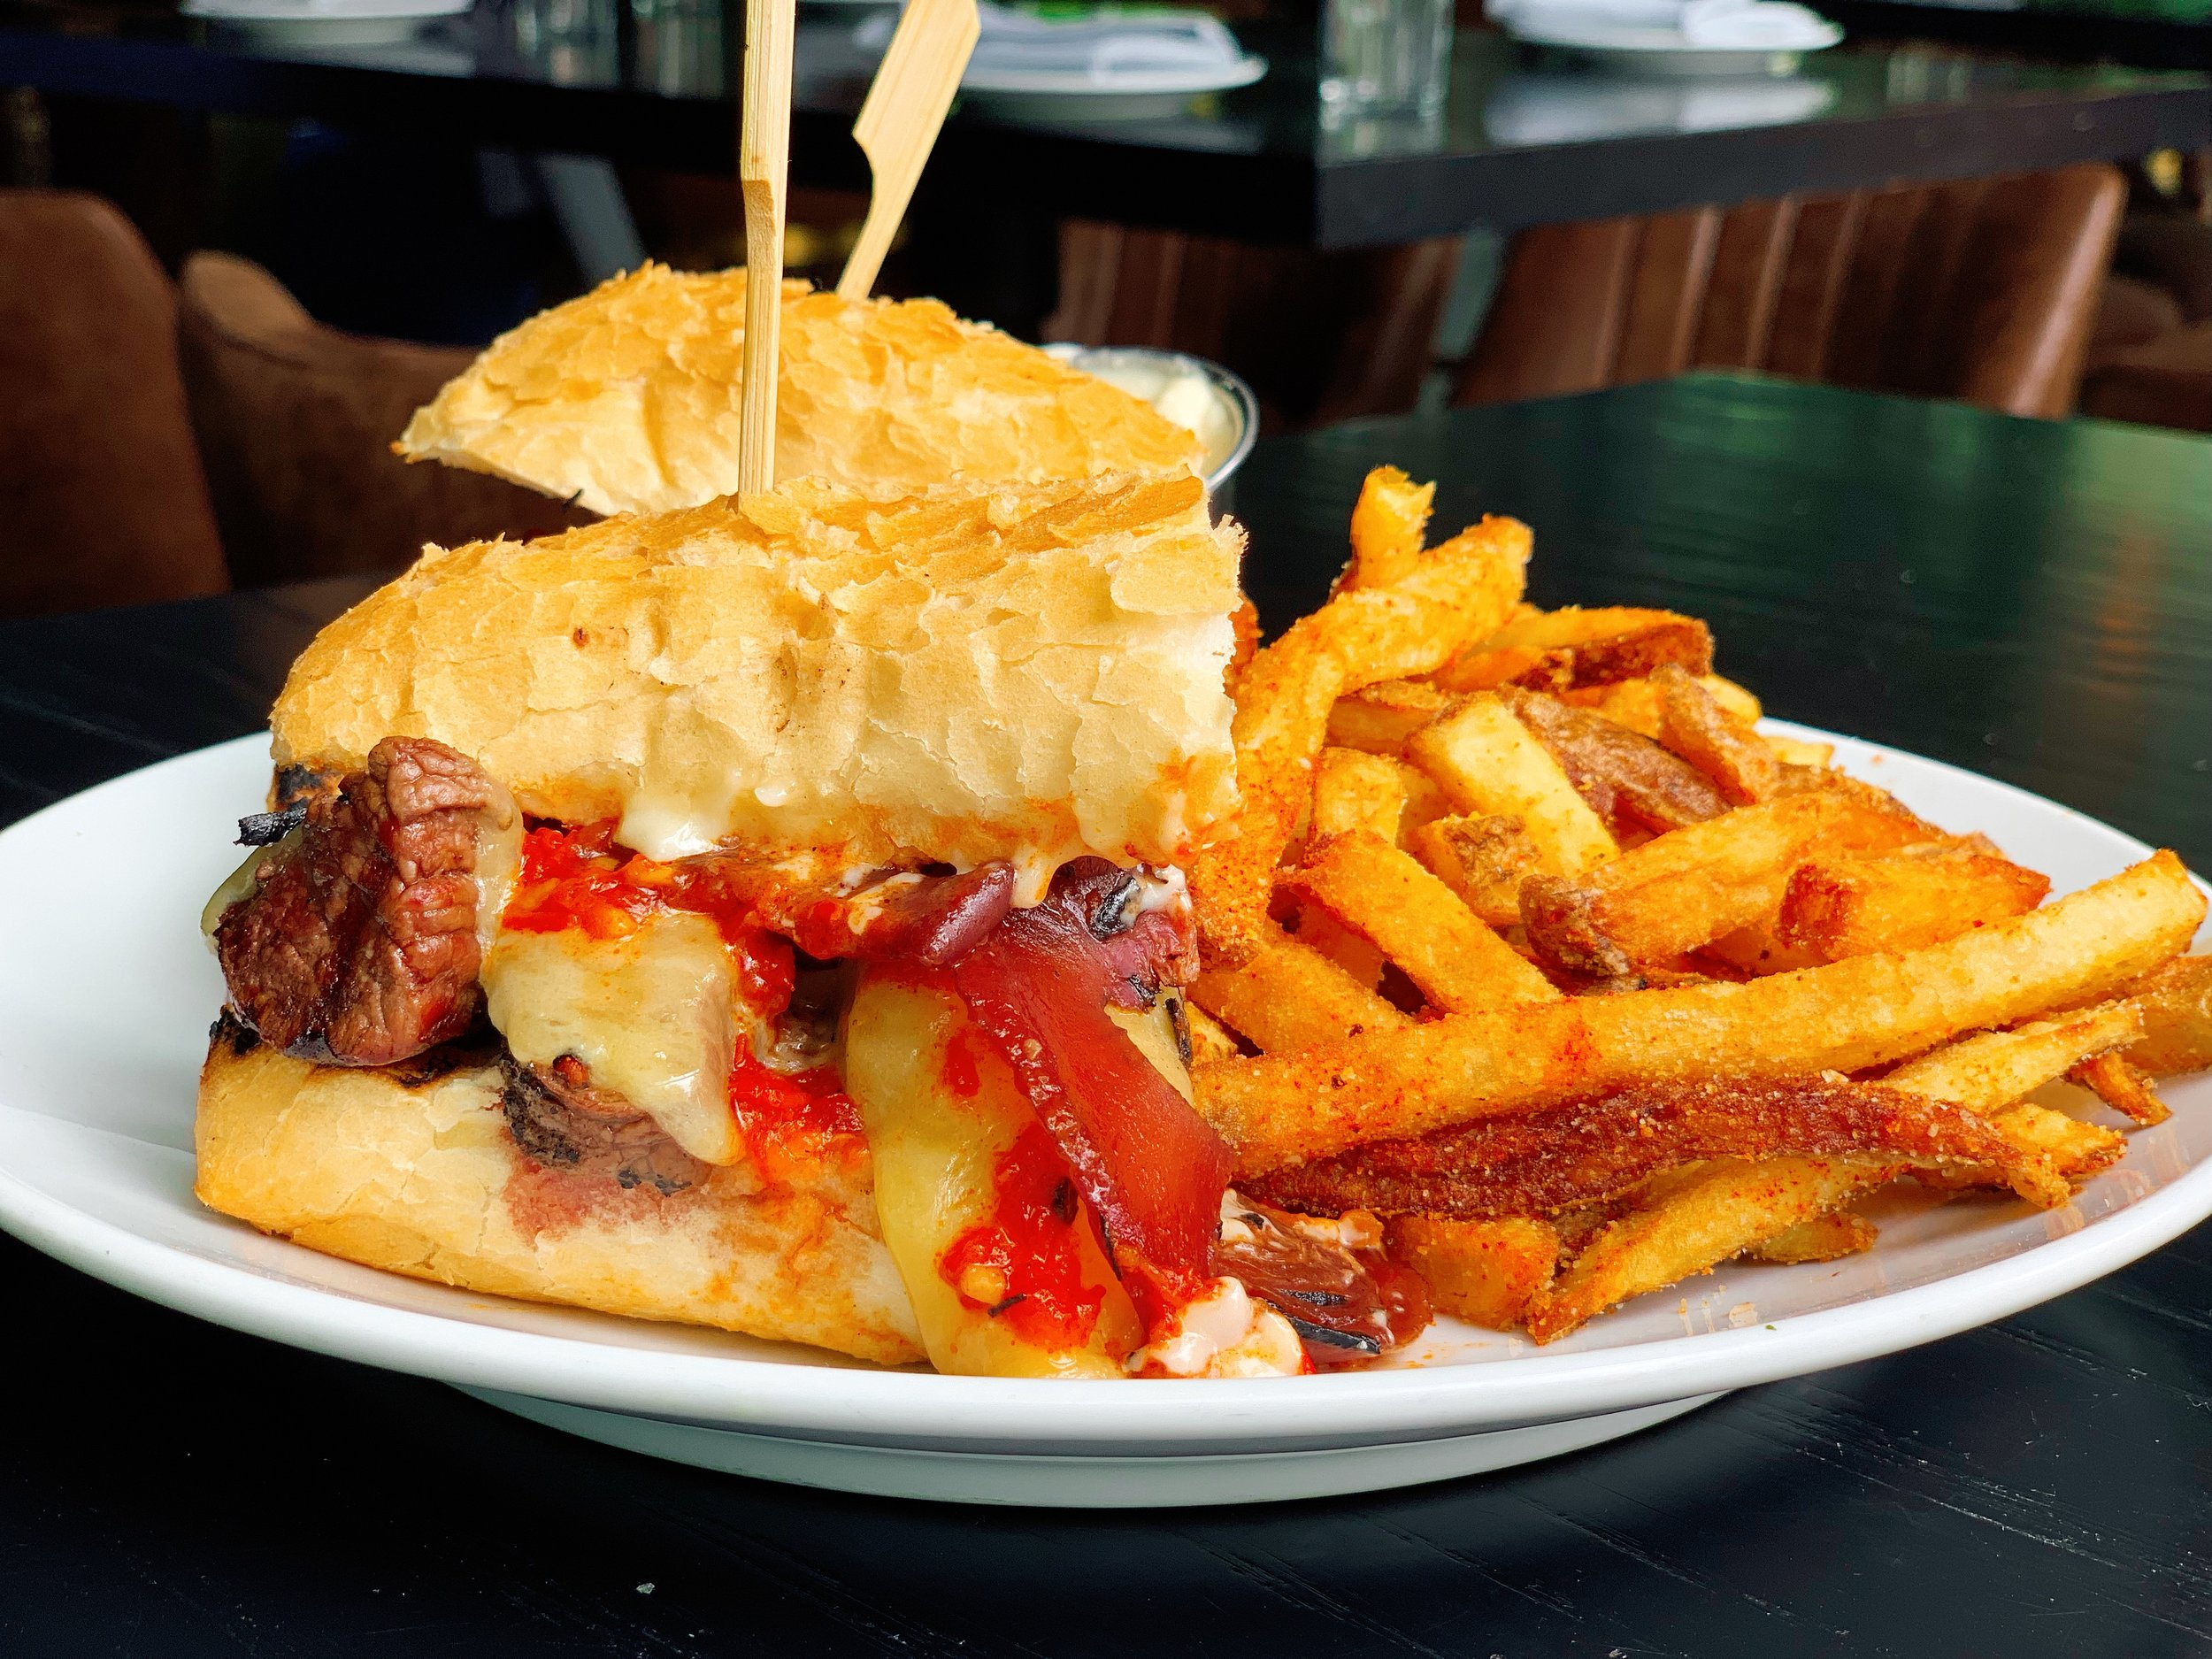 Grilled Top Sirloin Sandwich Served With Housemade Fries And Parmesan Aioli | Red Wine Onions + Harissa Sauce + Roasted Garlic Aioli + Aged White Cheddar Cheese + French Roll